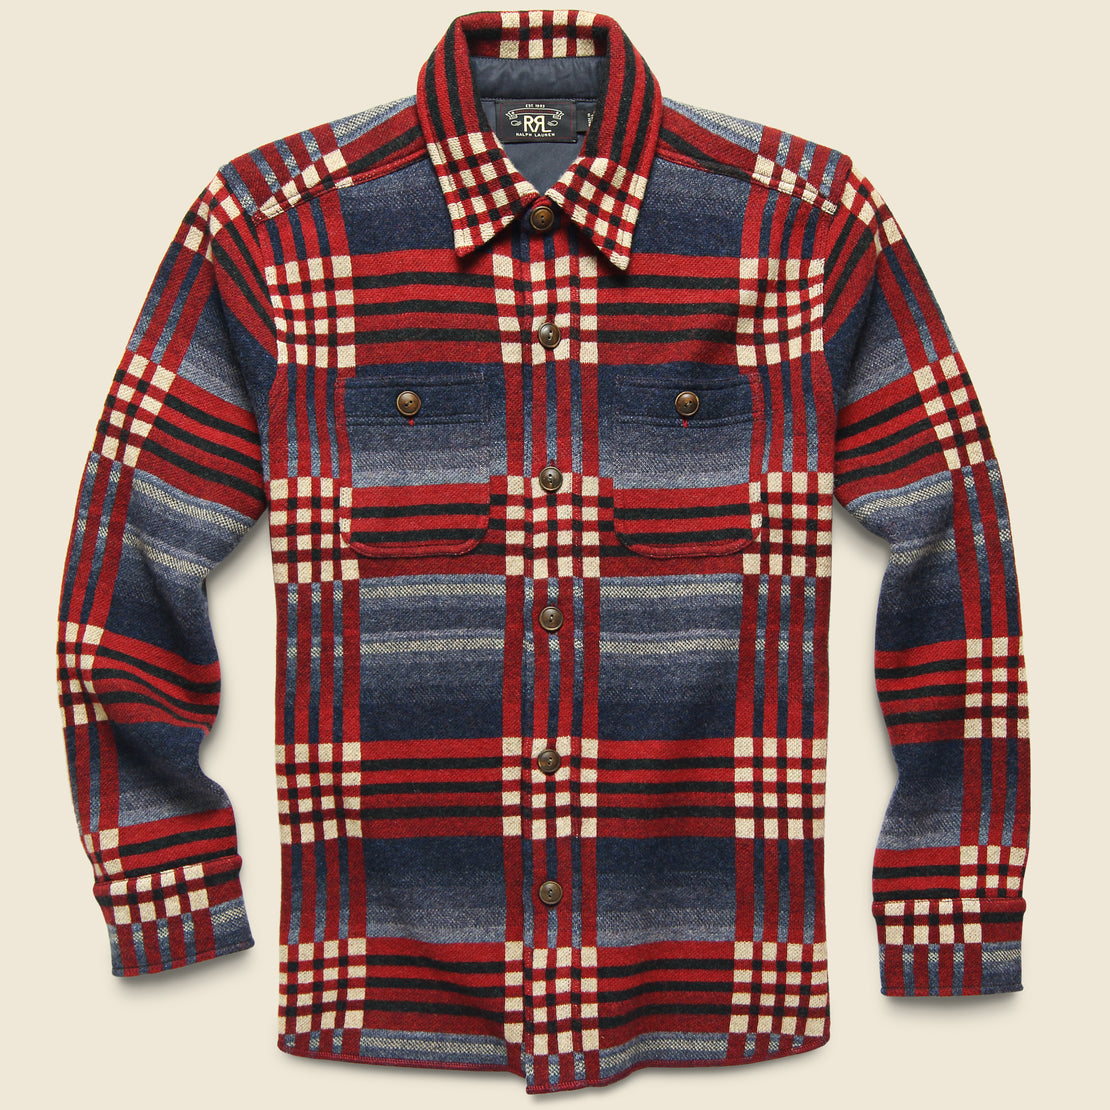 RRL Birdseye Jacquard Workshirt - Red/Blue